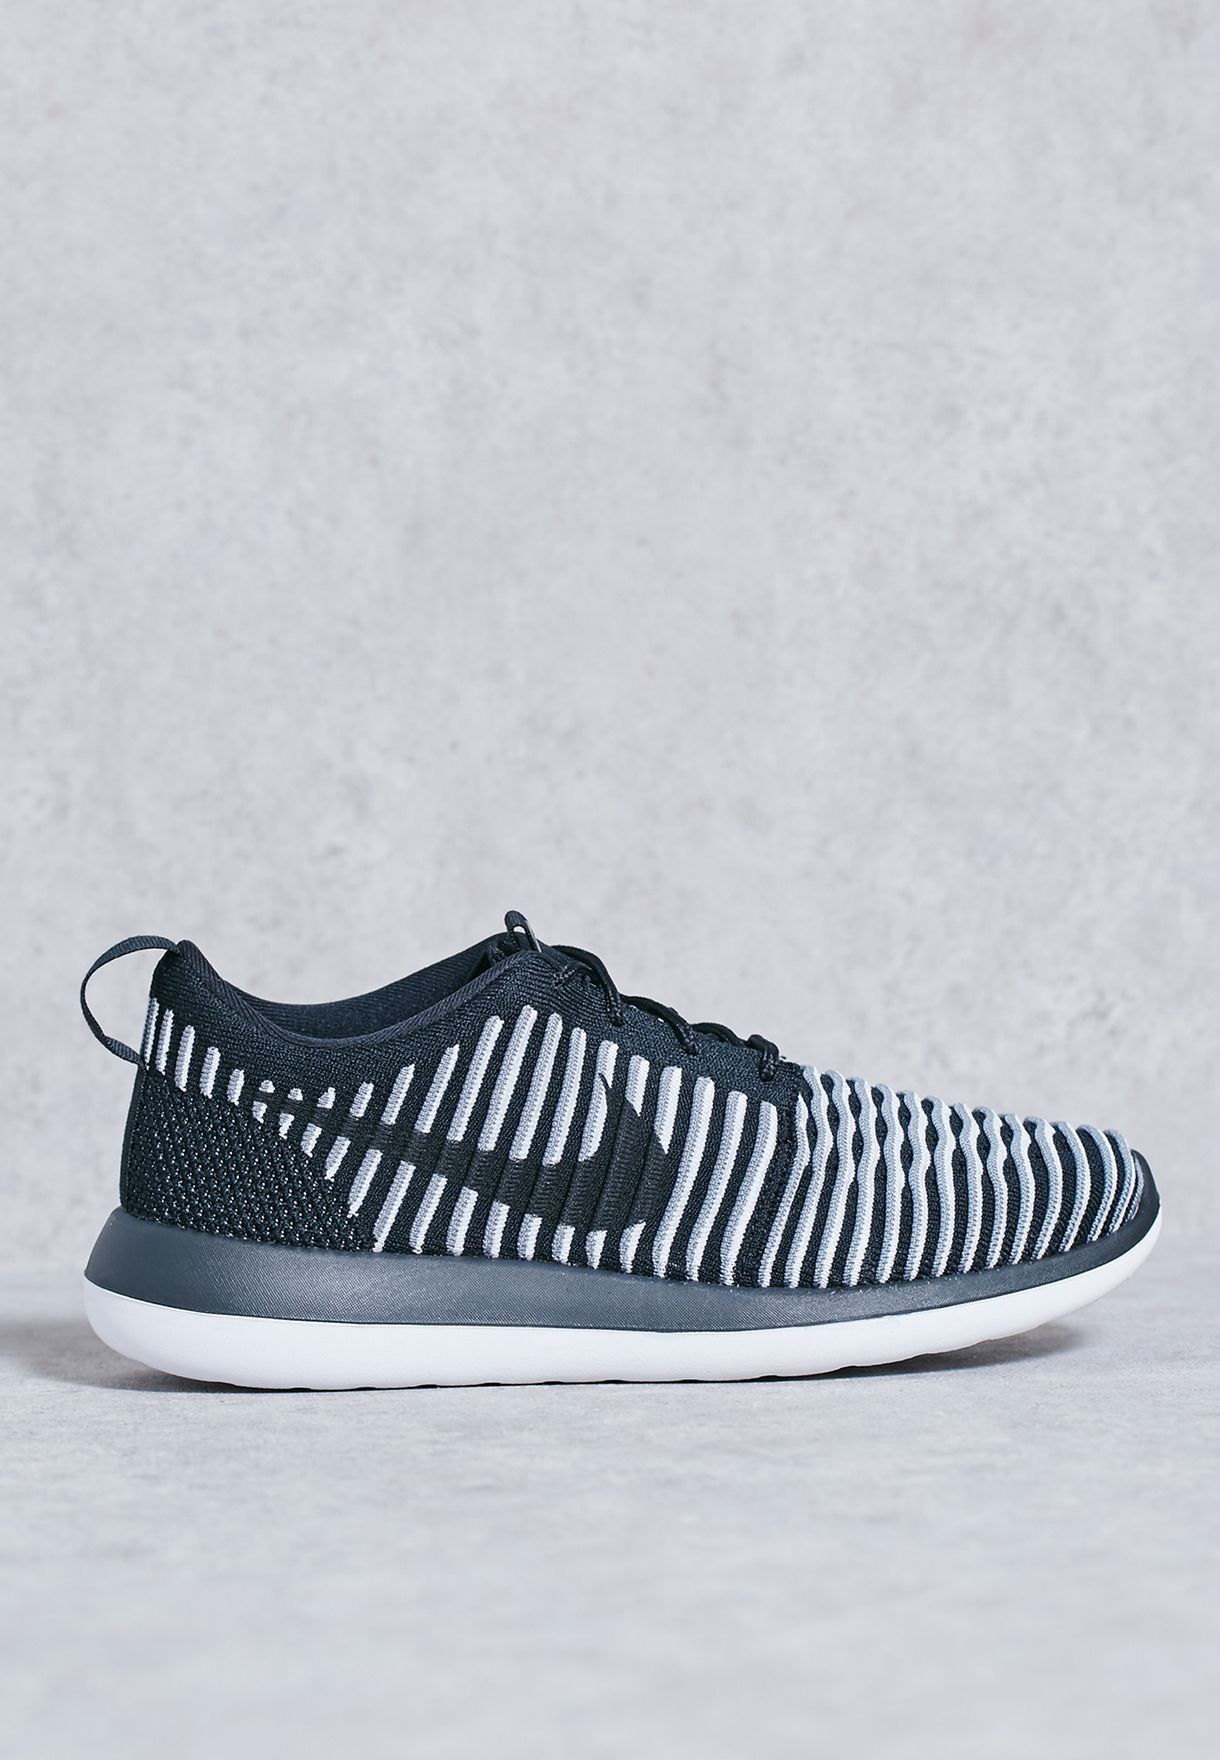 67baae7472b32 Shop Nike monochrome Roshe Two Flyknit 844929-001 for Women in UAE ...